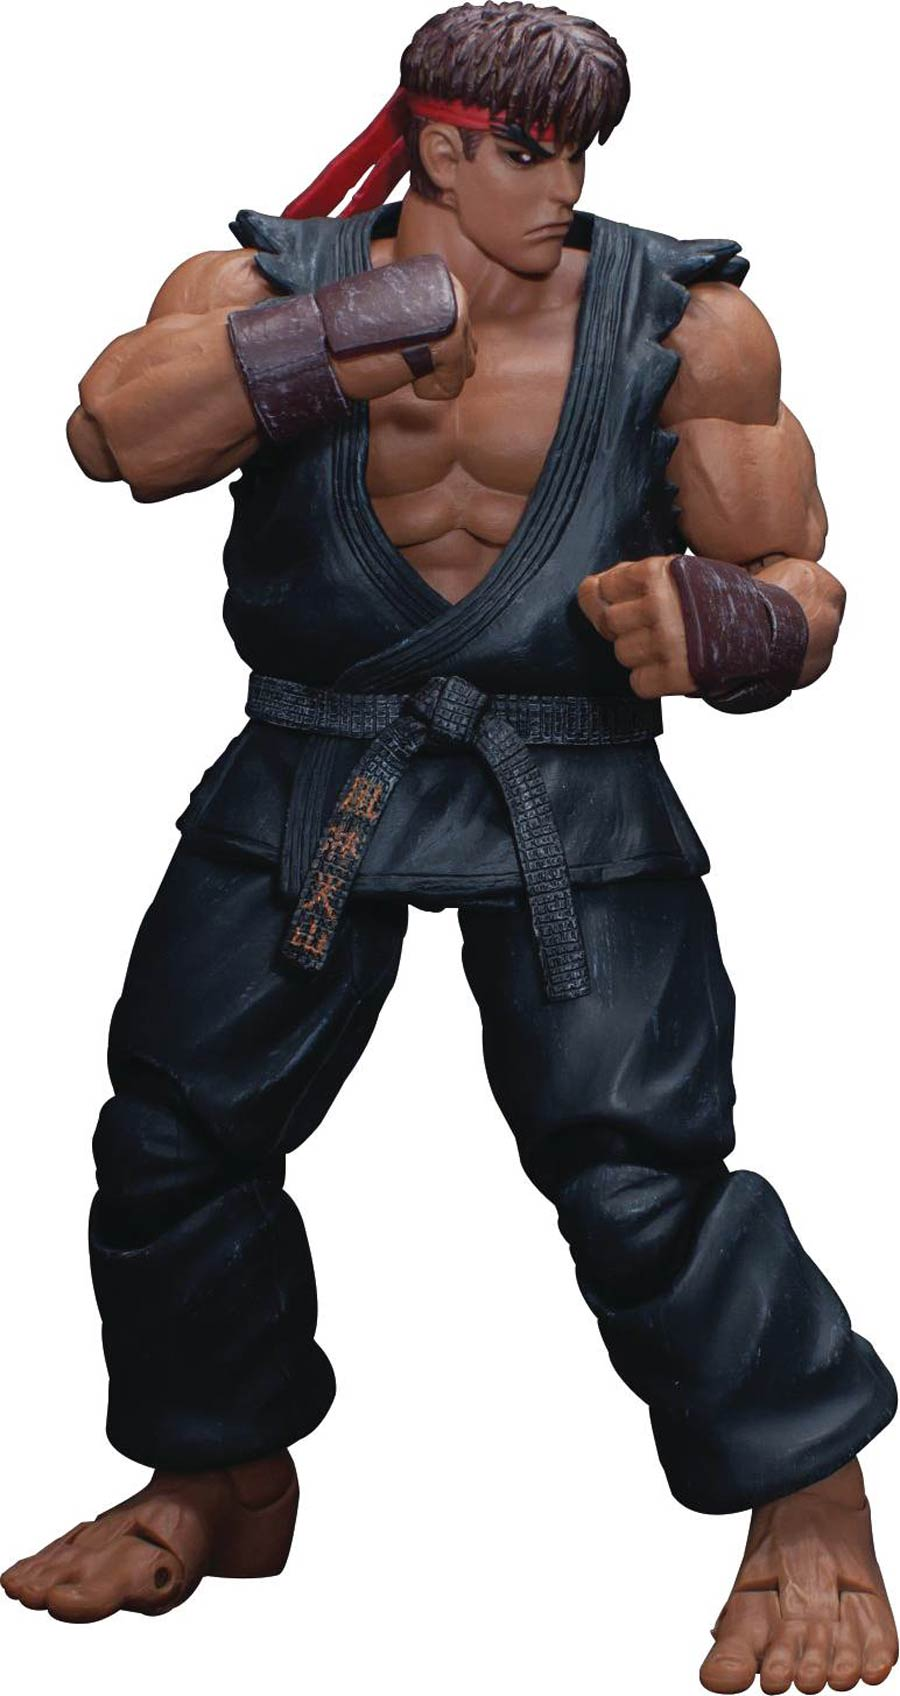 Ultra Street Fighter II The Final Challengers 1/12 - Evil Ryu Action Figure